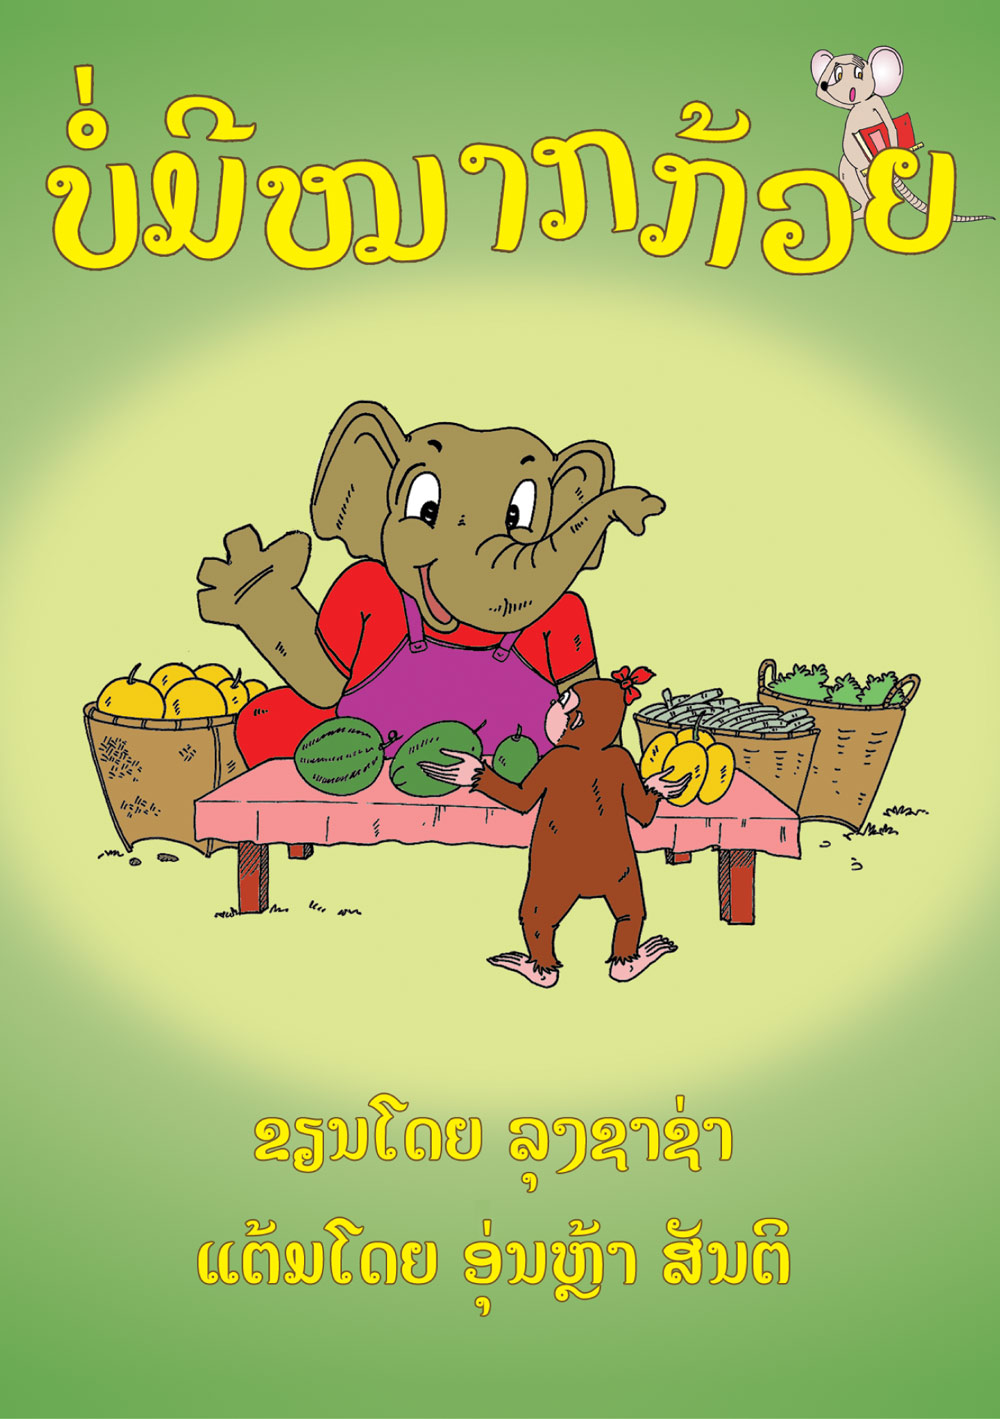 No Bananas large book cover, published in Lao language